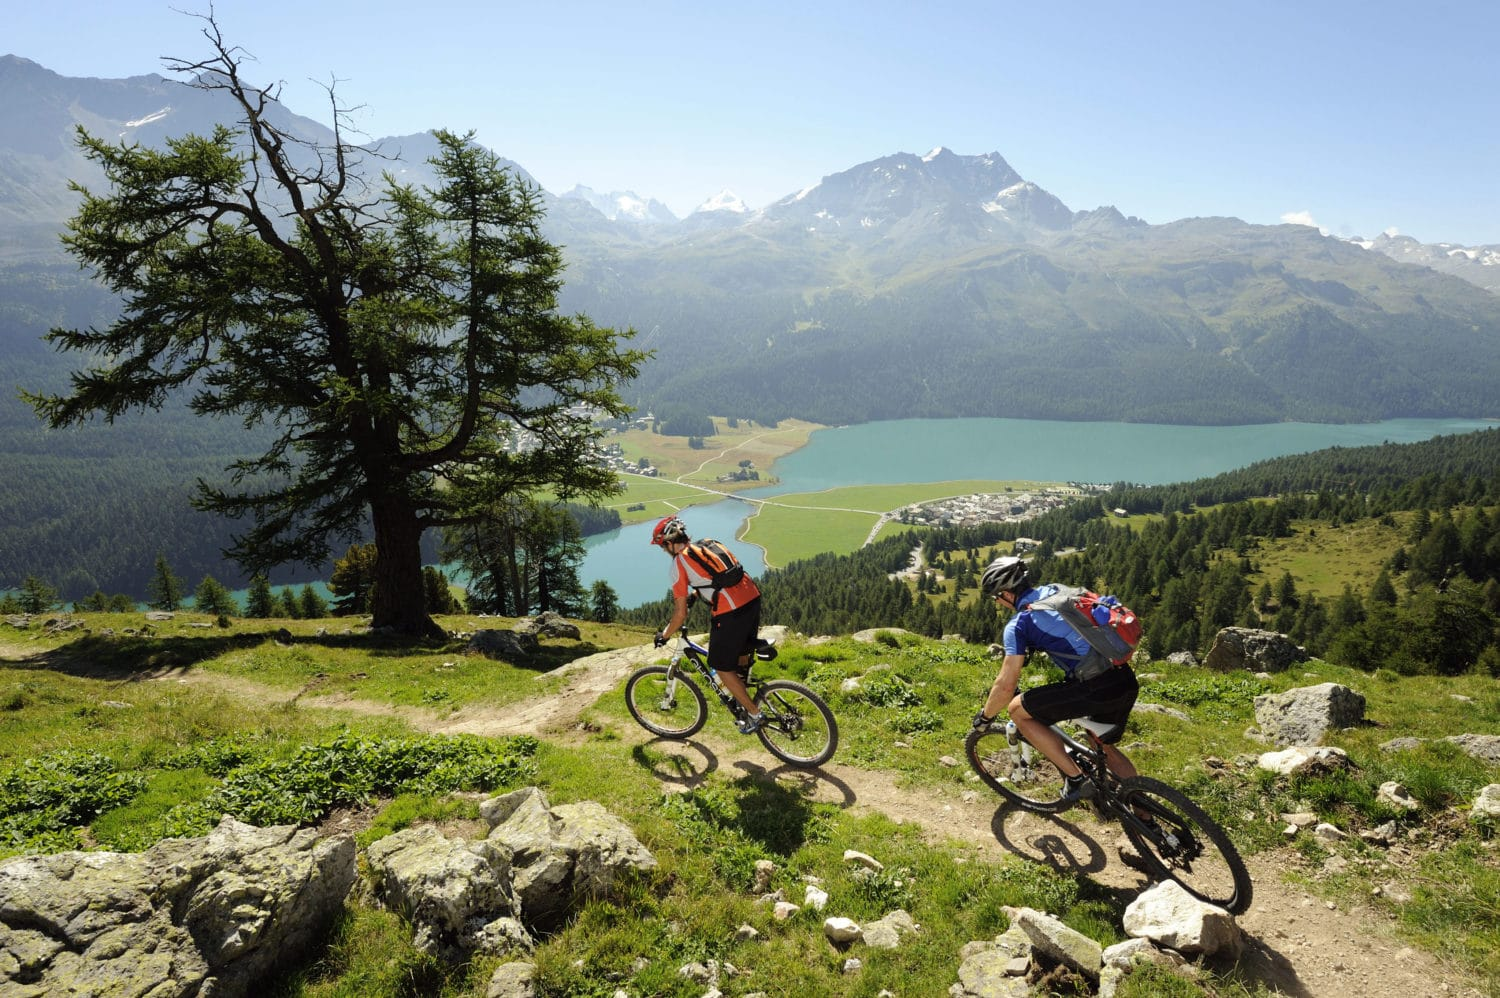 ENGADIN ST. MORITZ - Mountainbiker auf dem Padella-Corviglia-Panoramatrail, im Orchas-Gebiet, unterhalb von Piz Albana. Blick auf Silvaplana, Champferer und Silvaplaner See, Silvaplana-Surlej und Berge Piz San Gian (3134 m), Piz Surlej (3188 m), Munt Arlas (3127 m), Fuorcla Surlej (2755 m), Piz Murtel (3433 m) und Piz Corvatsch (3451 m). Mountainbiker sul trail panoramico Padella-Corviglia,-Panoramatrail nella zona di Orchas, ai piedi del Piz Albana. Vista sui laghi di Silvaplana, Champfer e Silvaplana, Silvaplana-Surlej e le montagne Piz San Gian (3134 m), Piz Surlej (3188 m), Munt Arlas (3127 m), Fuorcla Surlej (2755 m), Piz Murtel (3433 m) e Piz Corvatsch (3451 m). Mountain biker on the Padella-Corviglia Panorama Trail, in the Orchas region, below Piz Albana. View of Silvaplana, Lake Champfer and Lake Silvaplana, Silvaplana-Surlej and the mountains Piz San Gian (3,134 m), Piz Surlej (3,188 m), Munt Arlas (3,127 m), Fuorcla Surlej (2,755 m), Piz Murtel (3,433 m) and Piz Corvatsch (3,451 m). Copyright by: ENGADIN St. Moritz By-line: swiss-image.ch/Ralf Glaser